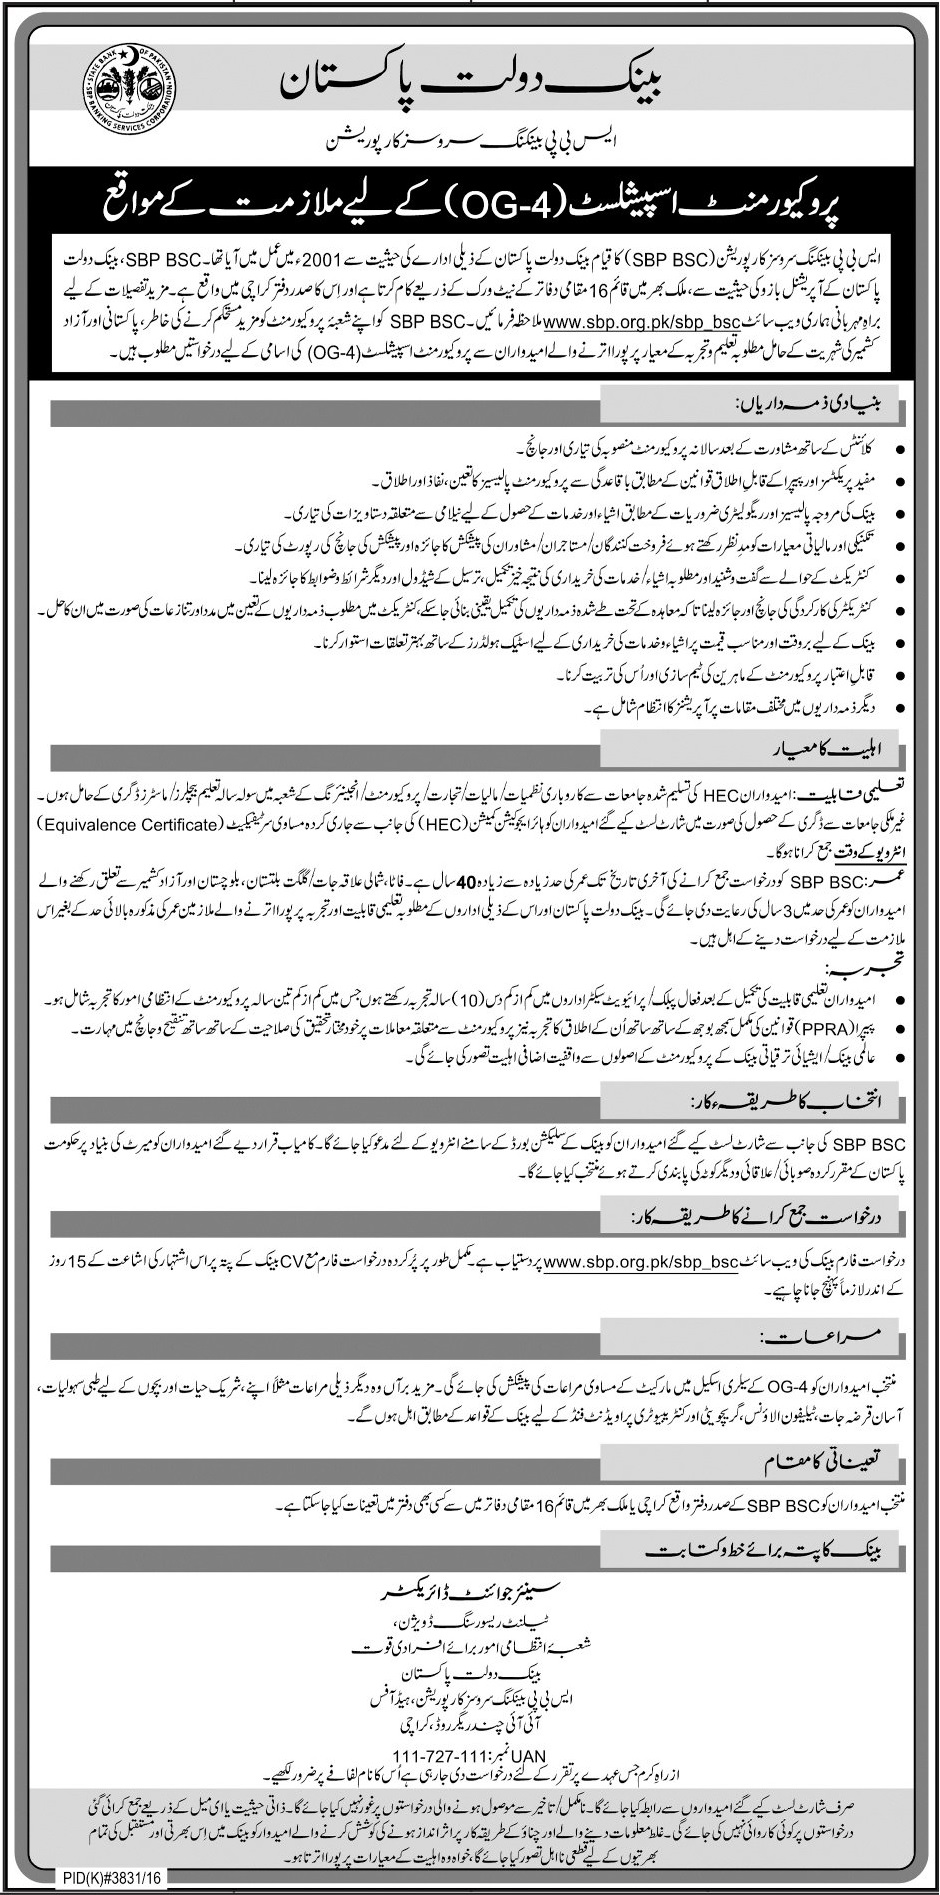 Job Application Form Punjab Food Authority on retail job application, women job application, hotel job application, author job application, bar job application, electric job application, messy job application, hospital job application, farm job application, stock job application, in n out job application, finished job application, first job application, hospitality job application, baby care job application, cat job application, computer job application, golf job application, animated job application, filling job application,